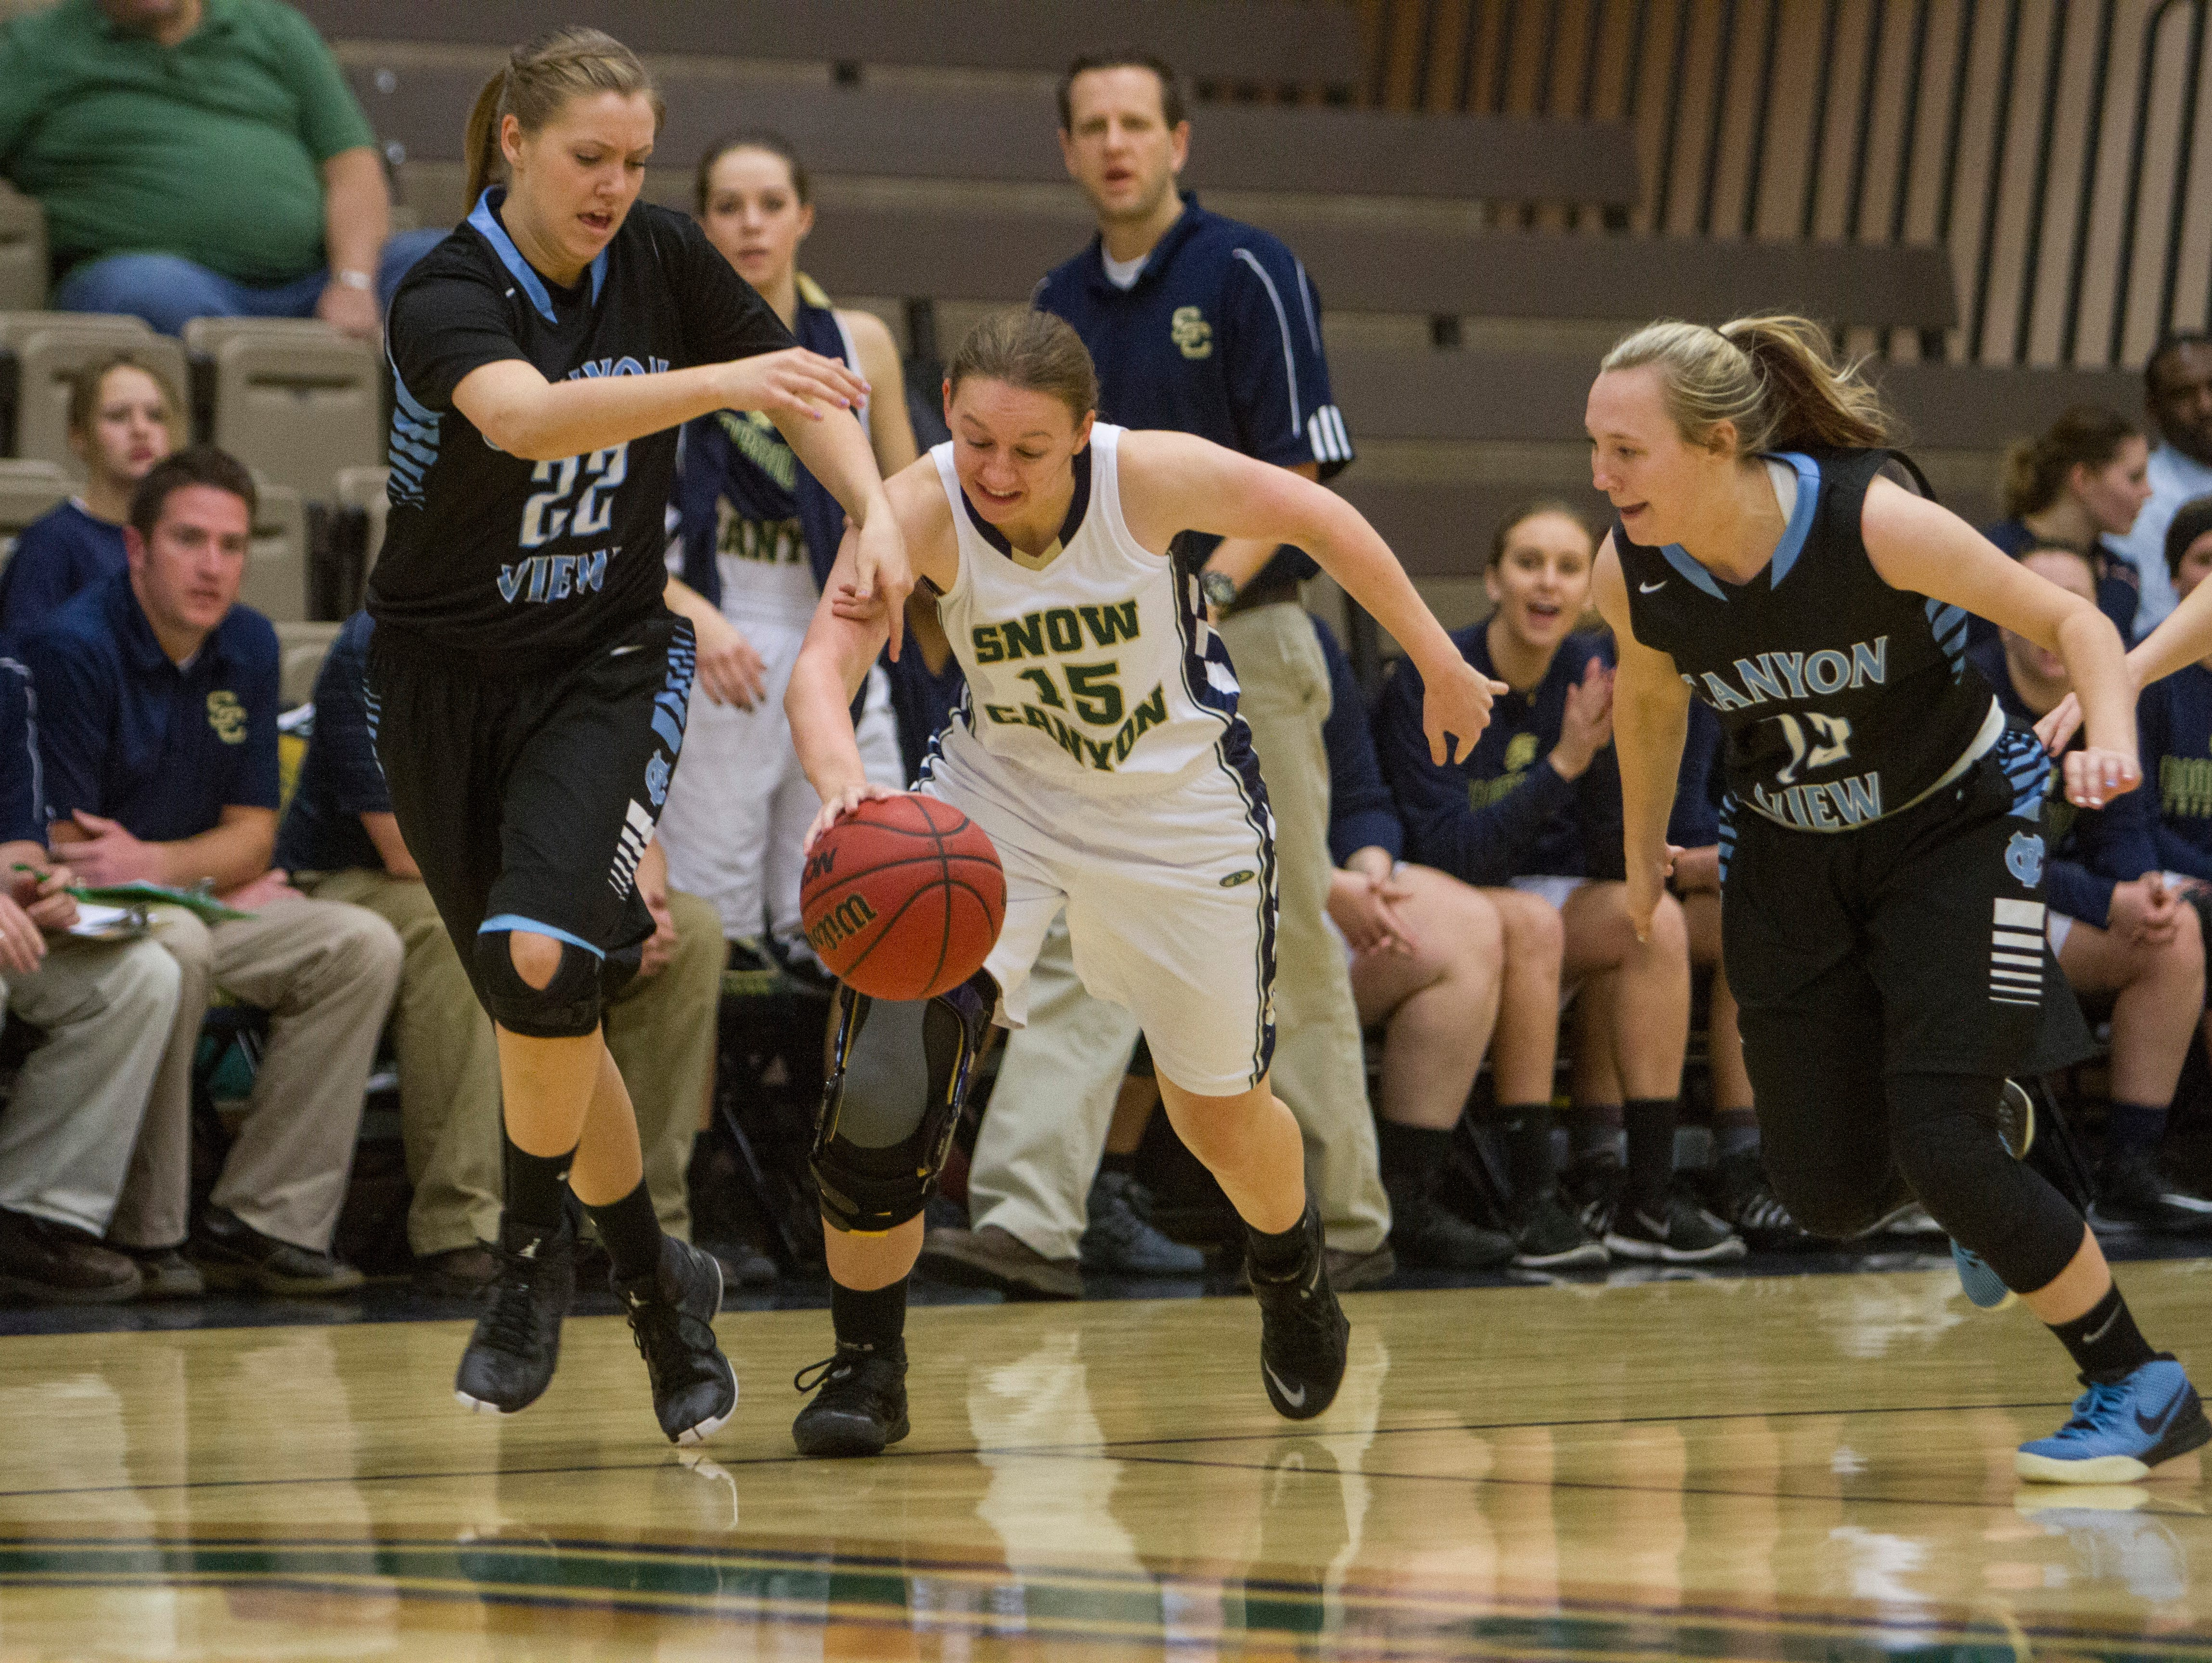 Snow Canyon's Natalie Coulam dribbles through traffic against Canyon View on Thursday in St. George. Coulam worked through an ACL injury to be a part of this year's team.